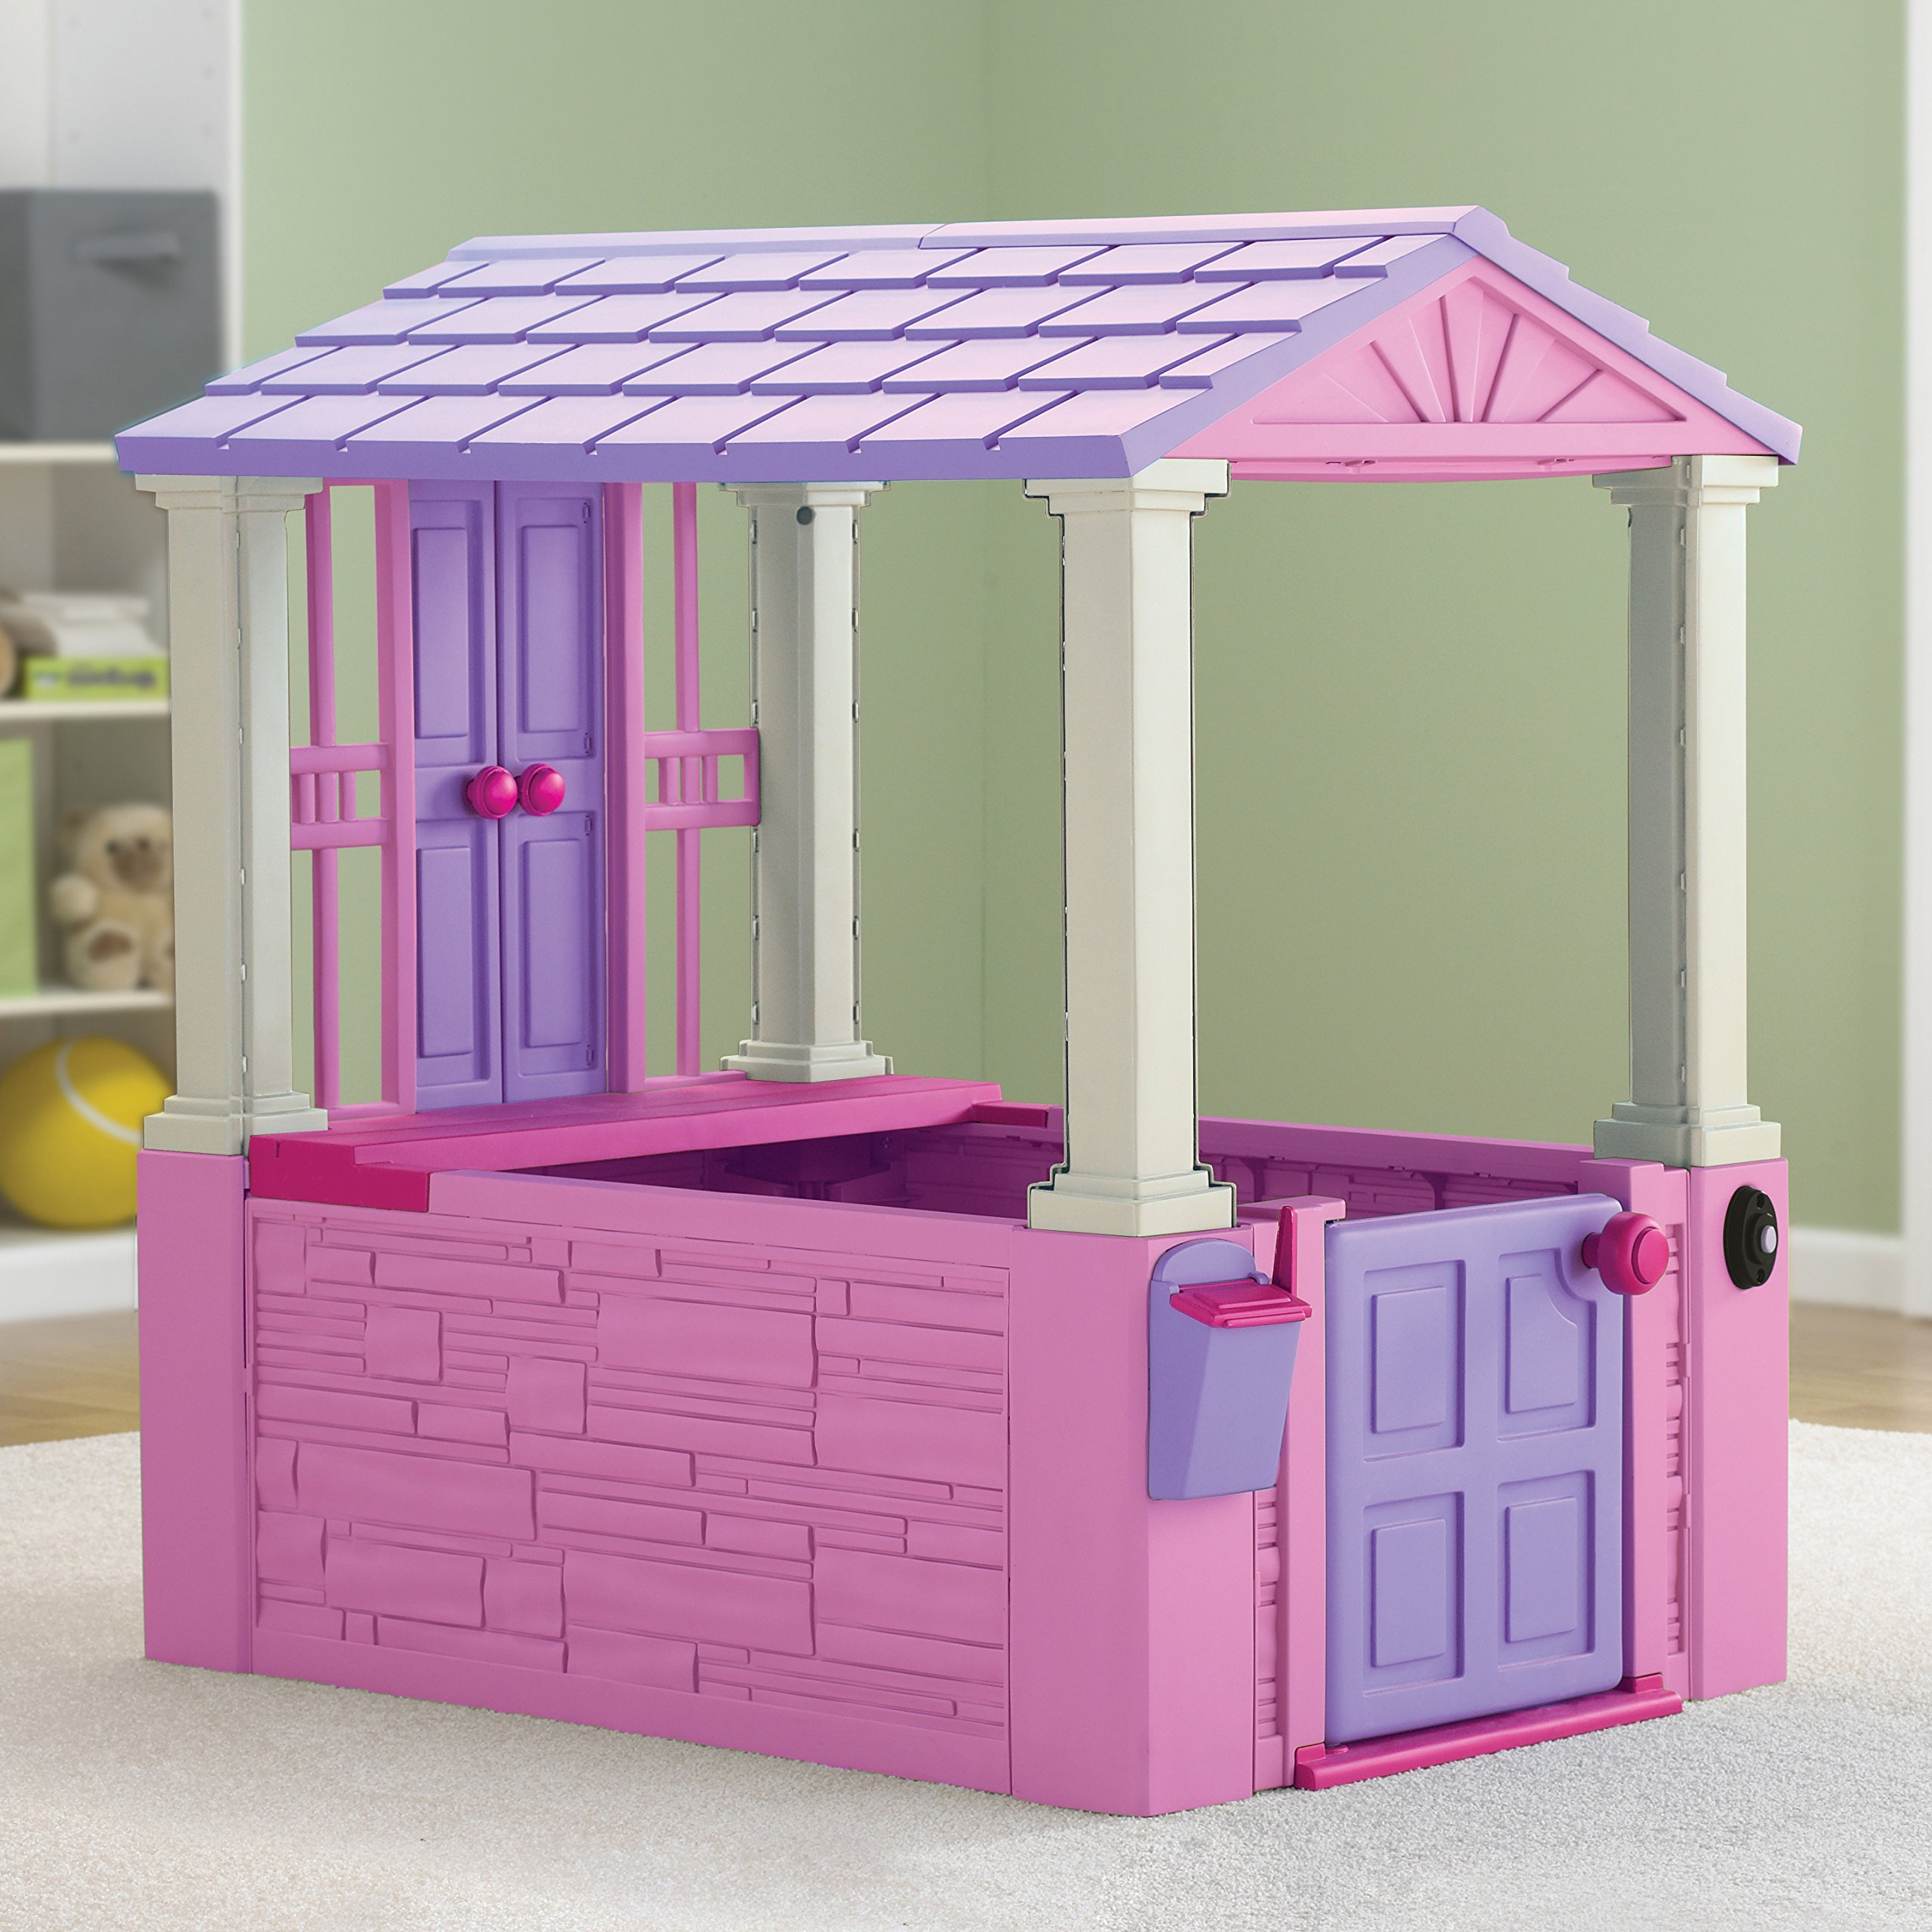 American Plastic Toys My Very Own Dream Cottage Interactive Playhouse for Kids, Pink by American Plastic Toys (Image #2)